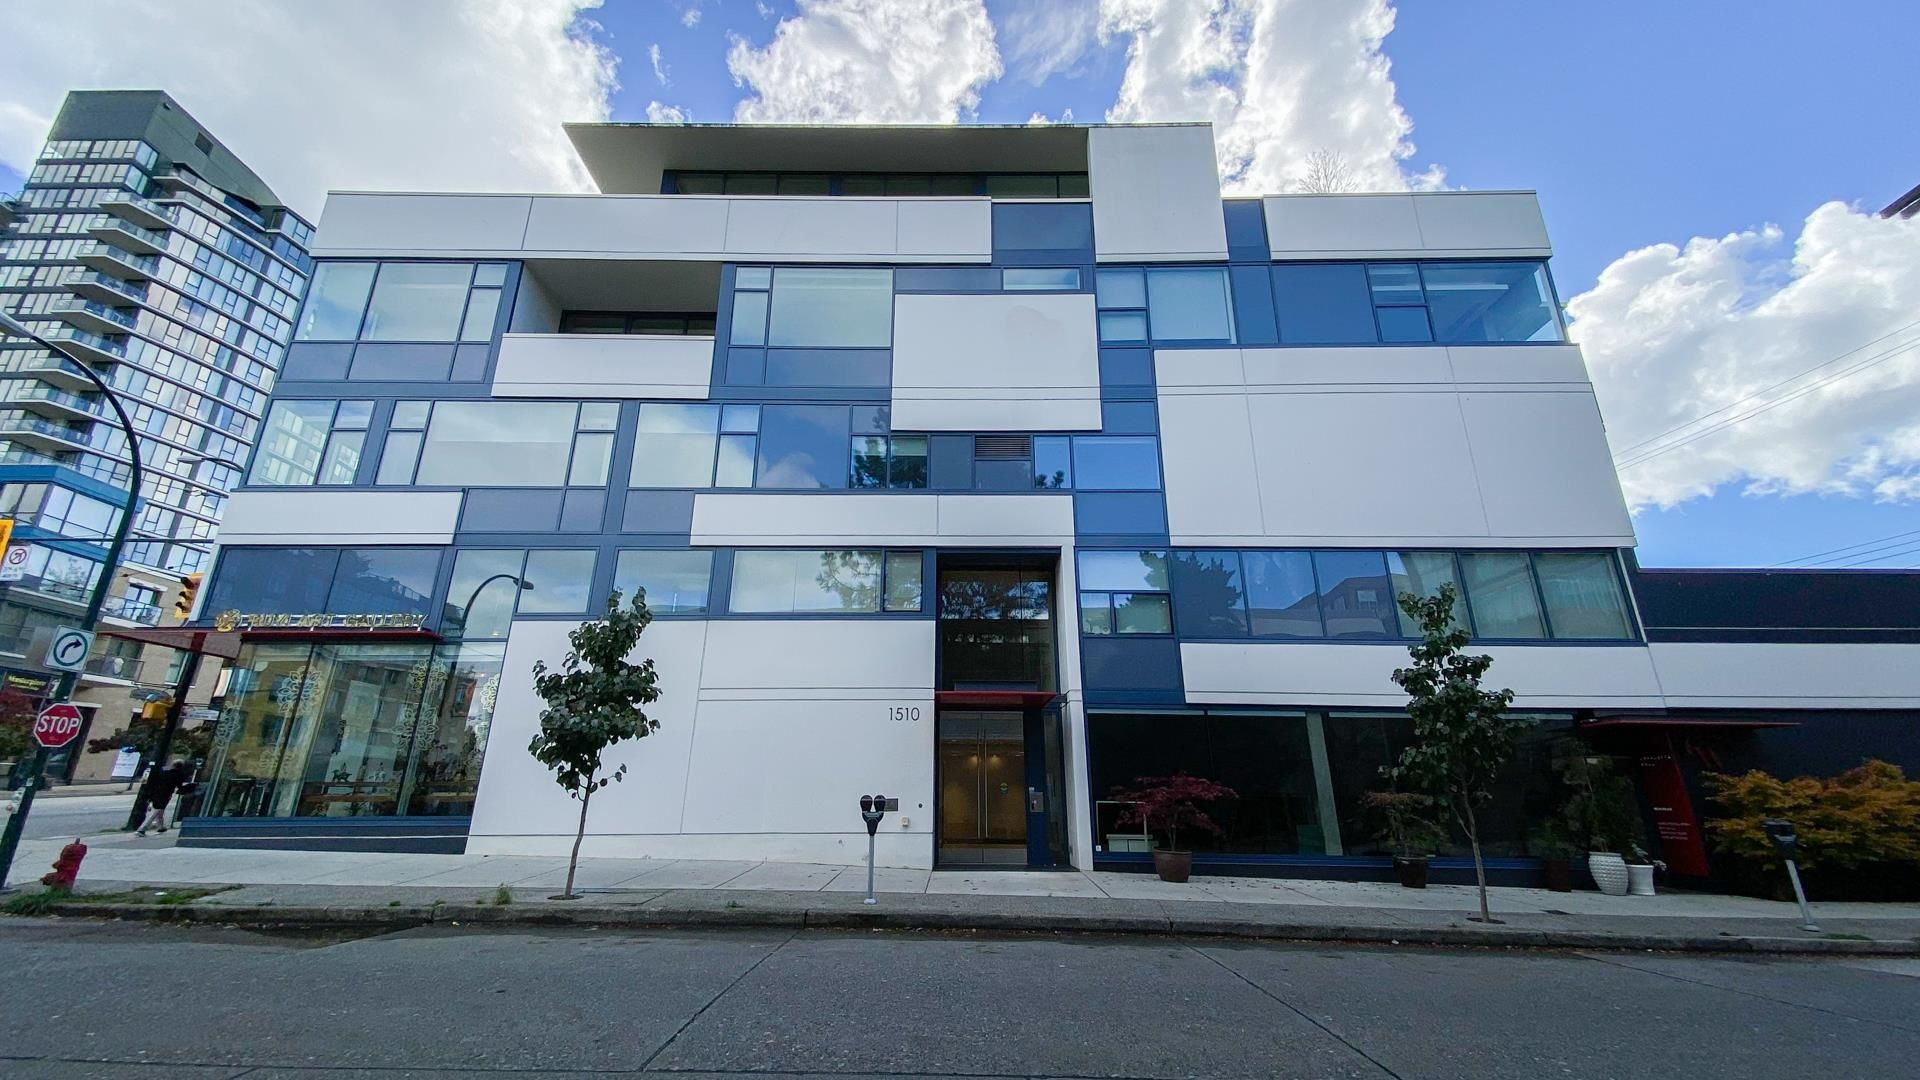 """Main Photo: 201 1510 W 6TH Avenue in Vancouver: Fairview VW Condo for sale in """"THE ZONDA"""" (Vancouver West)  : MLS®# R2624993"""